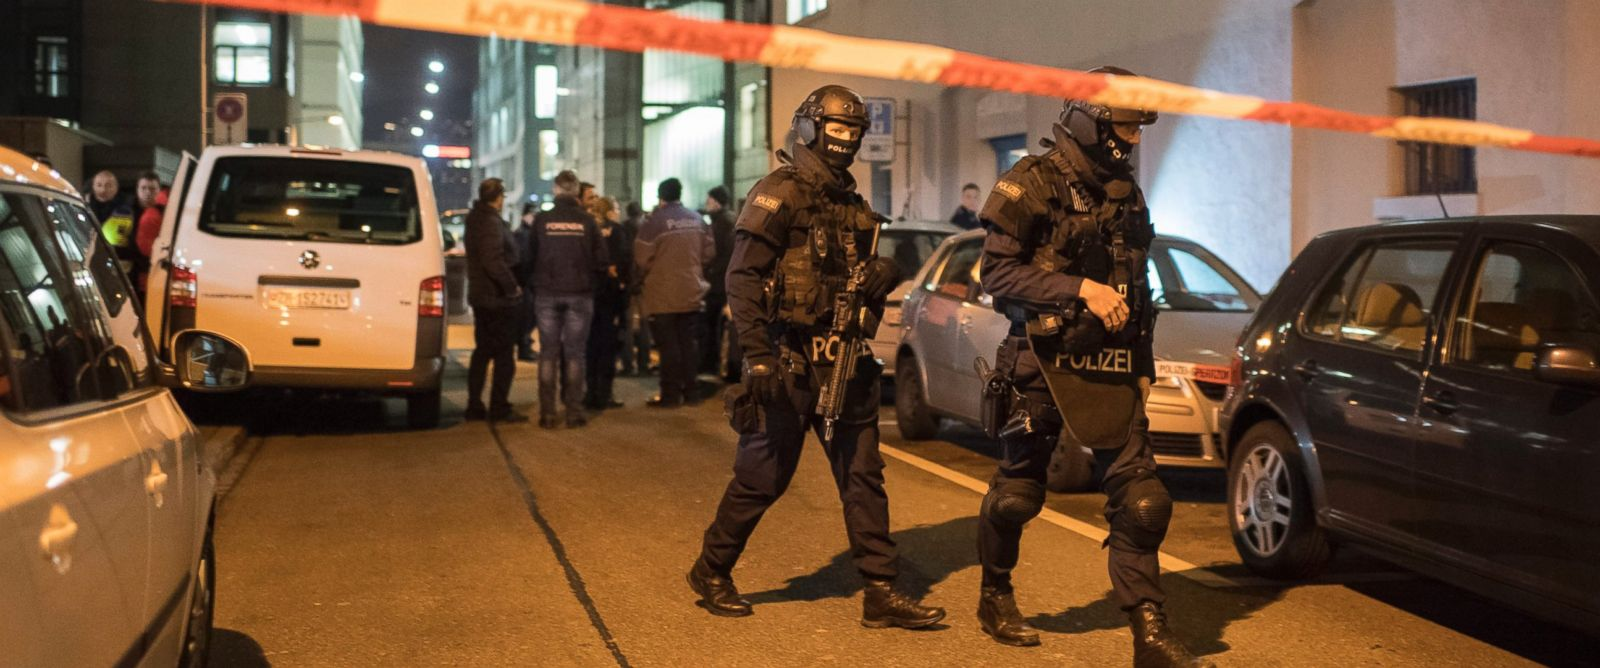 PHOTO: Policemen of a special unit secure the area in front of the Islamic center after a shooting in Zurich, Switzerland, Dec. 19, 2016.